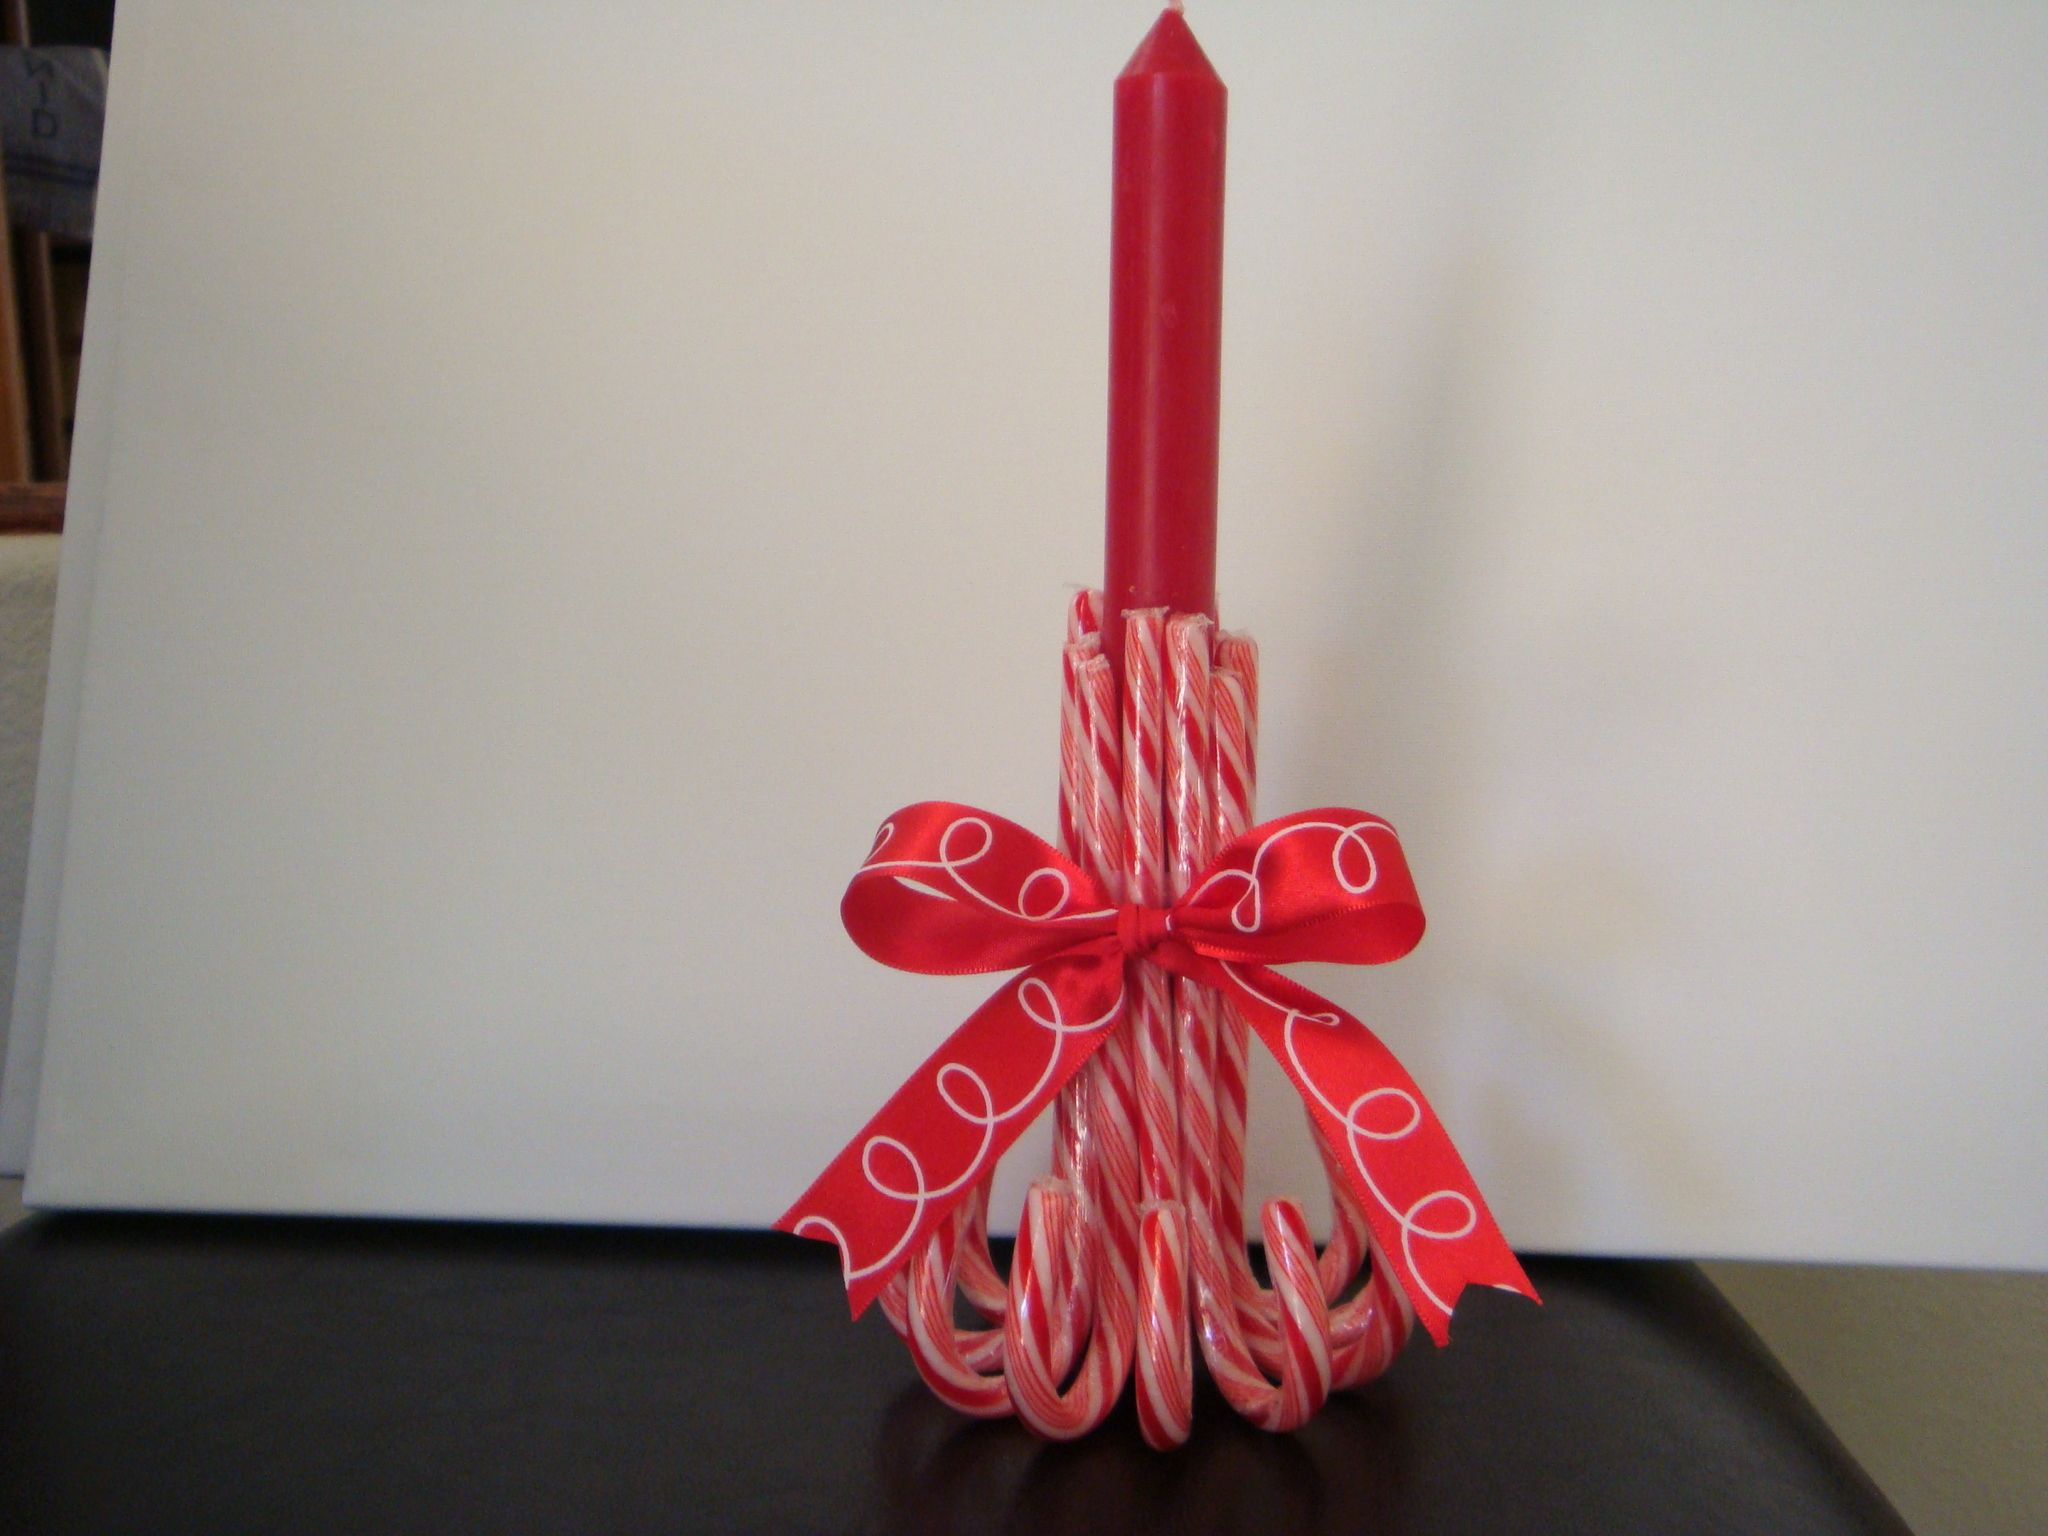 Candy cane candle holder stuff i made myself pinterest for Candy cane holder candle centerpiece